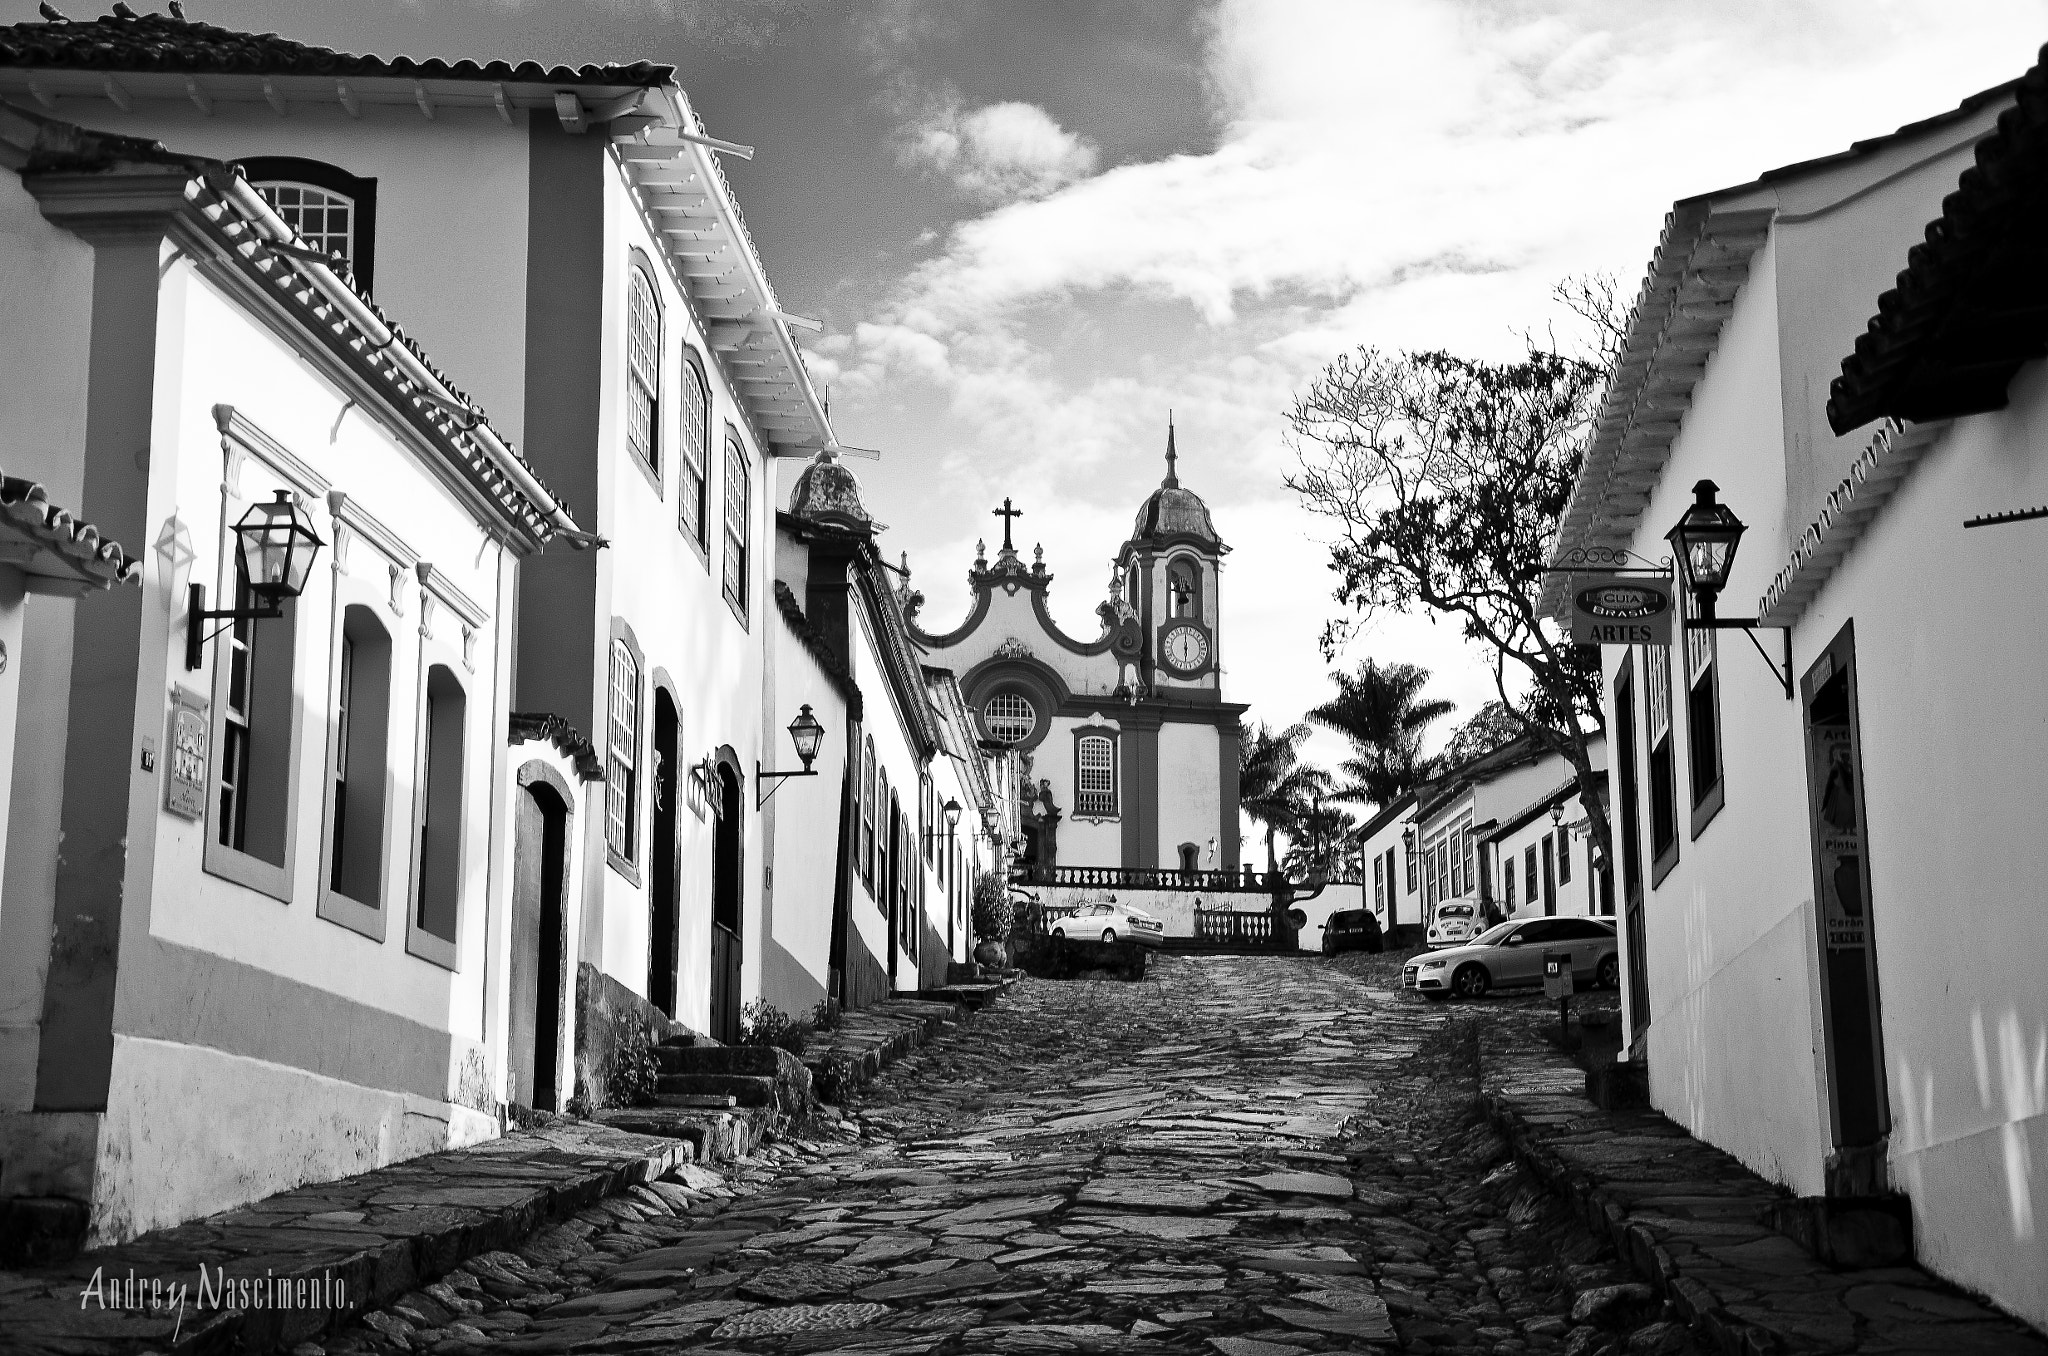 Photograph B&W Tiradentes by Andrey Nascimento on 500px